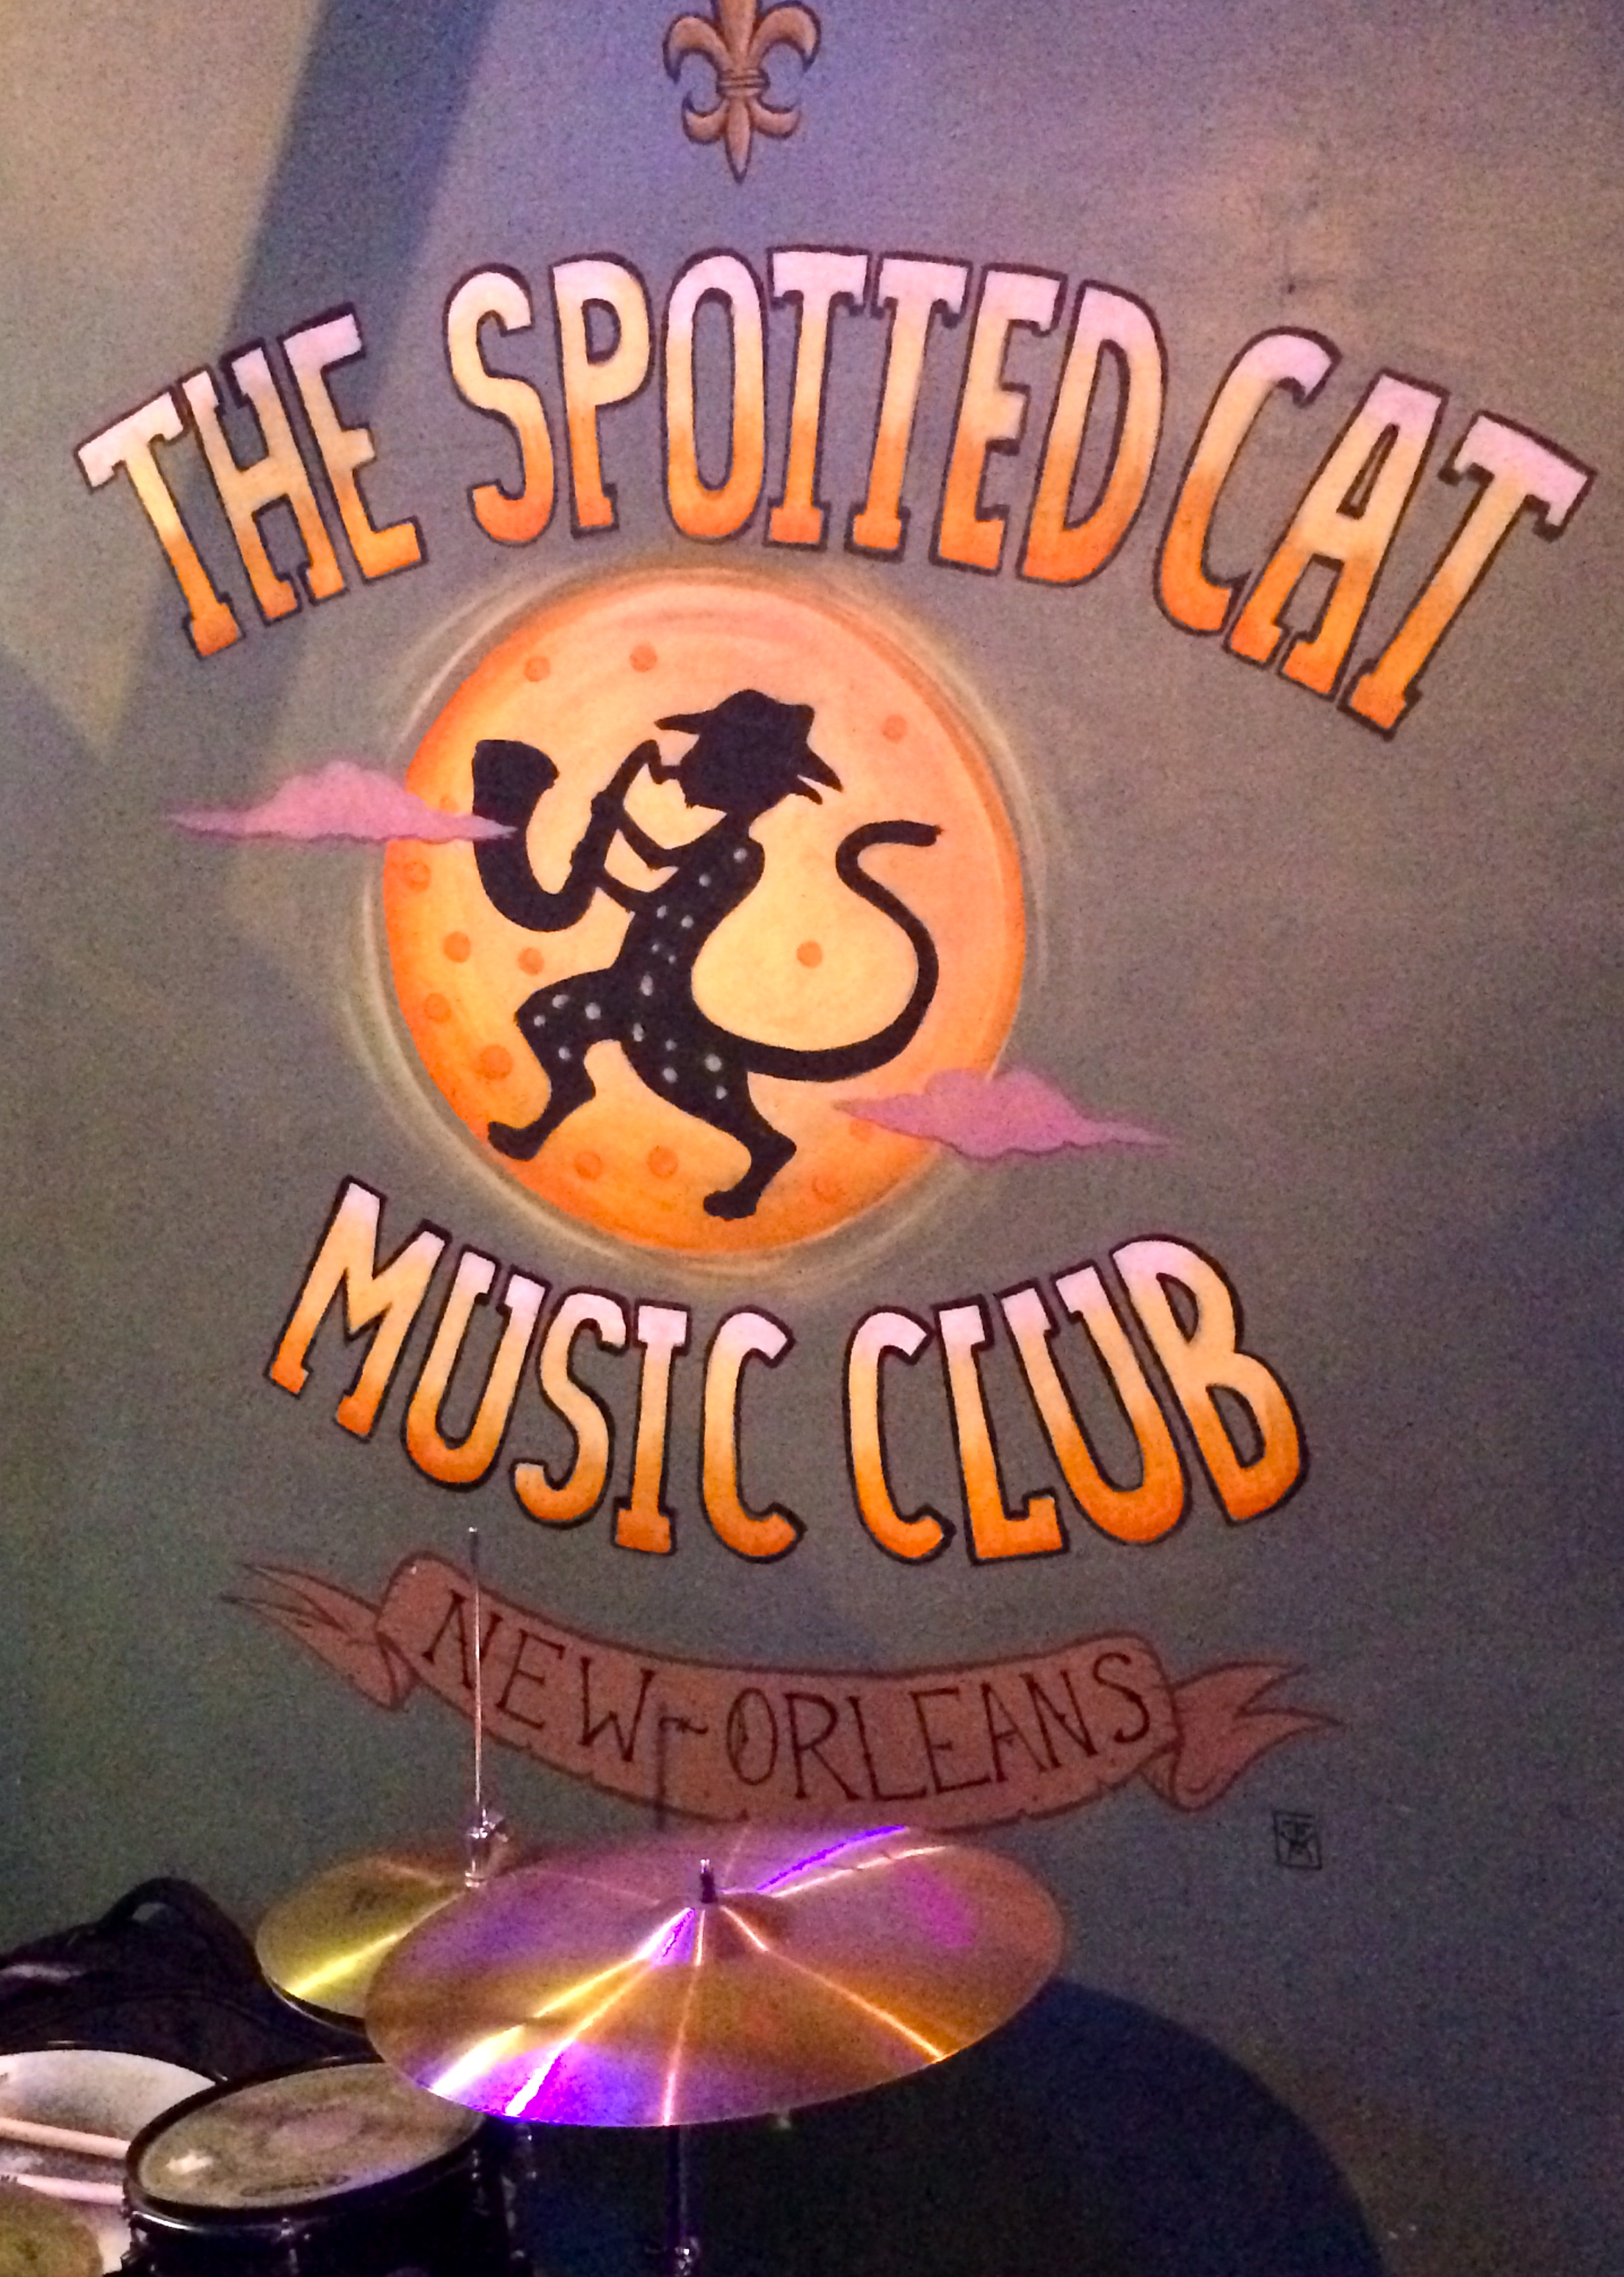 The Spotted Cat - Frenchmen Street.